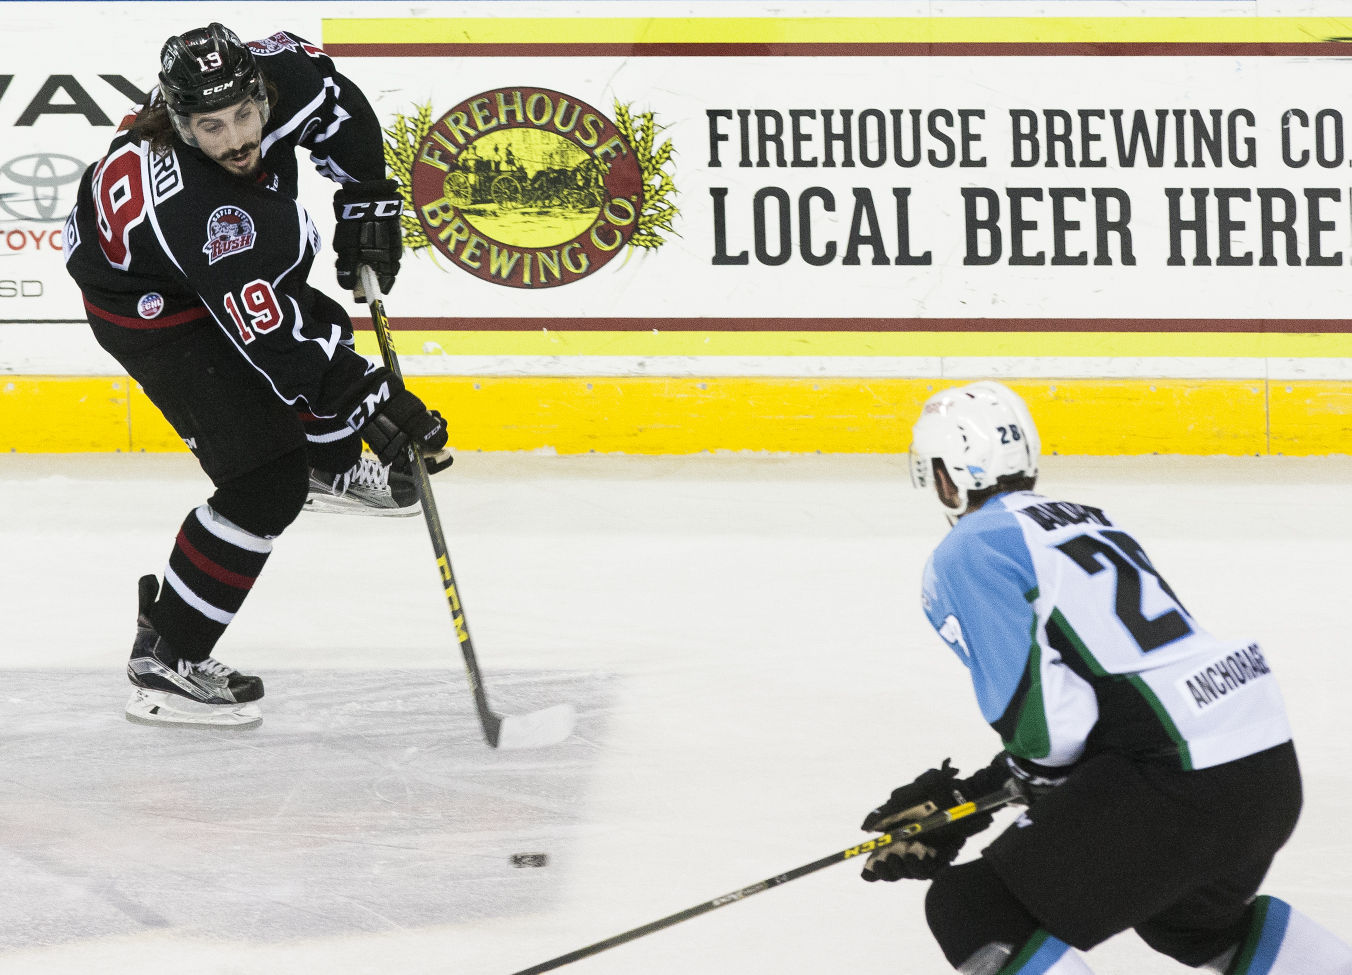 ECHL: Aces Get Past Rush In Shootout